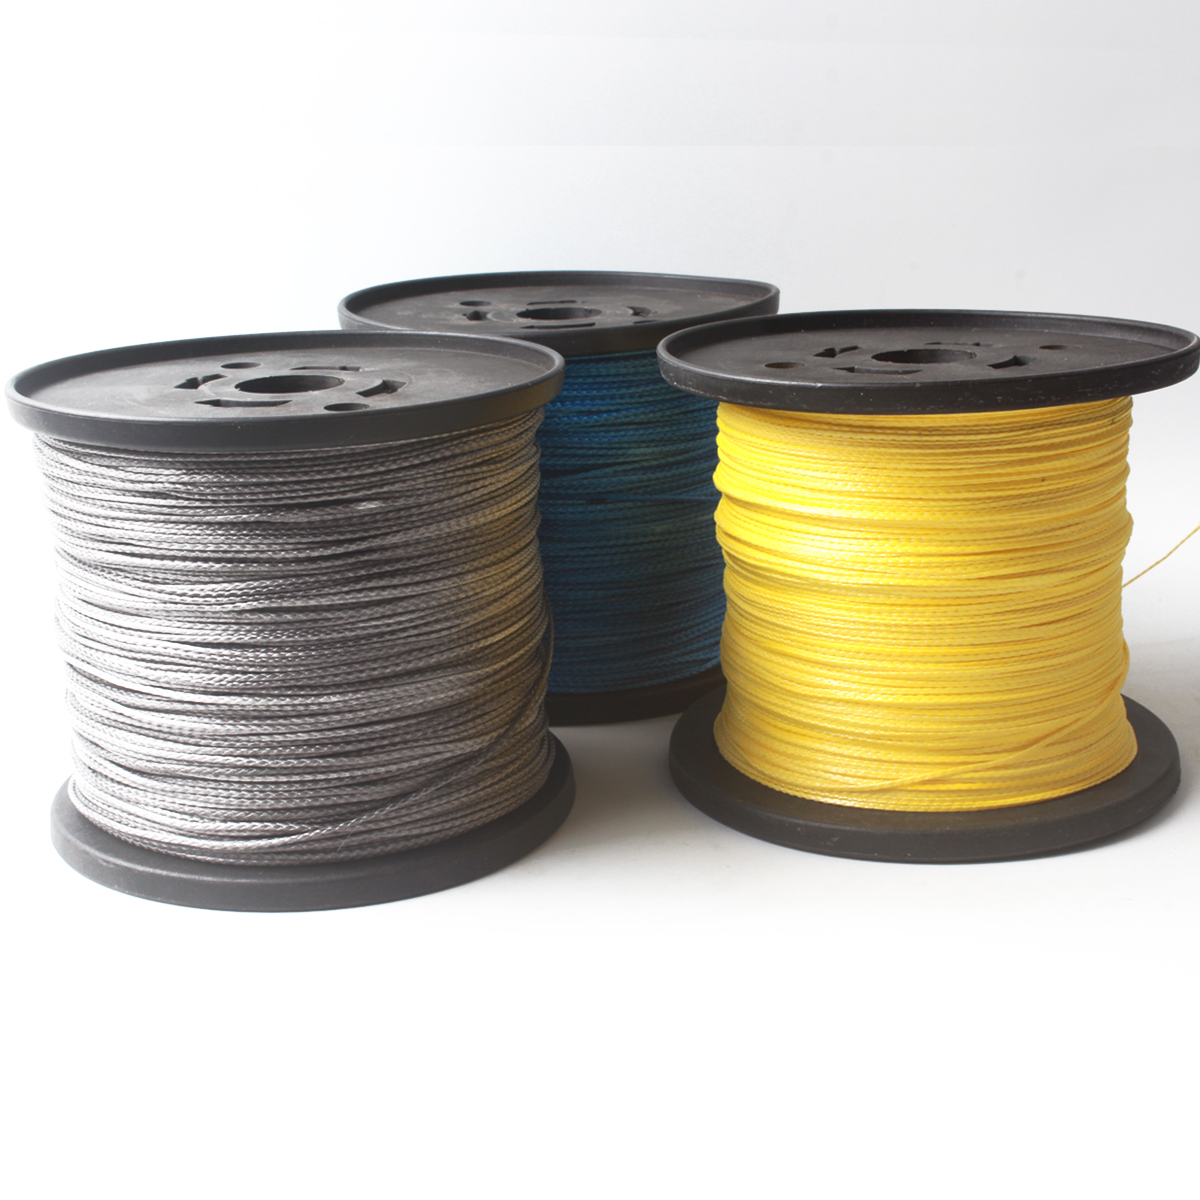 1.6mm 8strands UHMWPE hollow braid rope